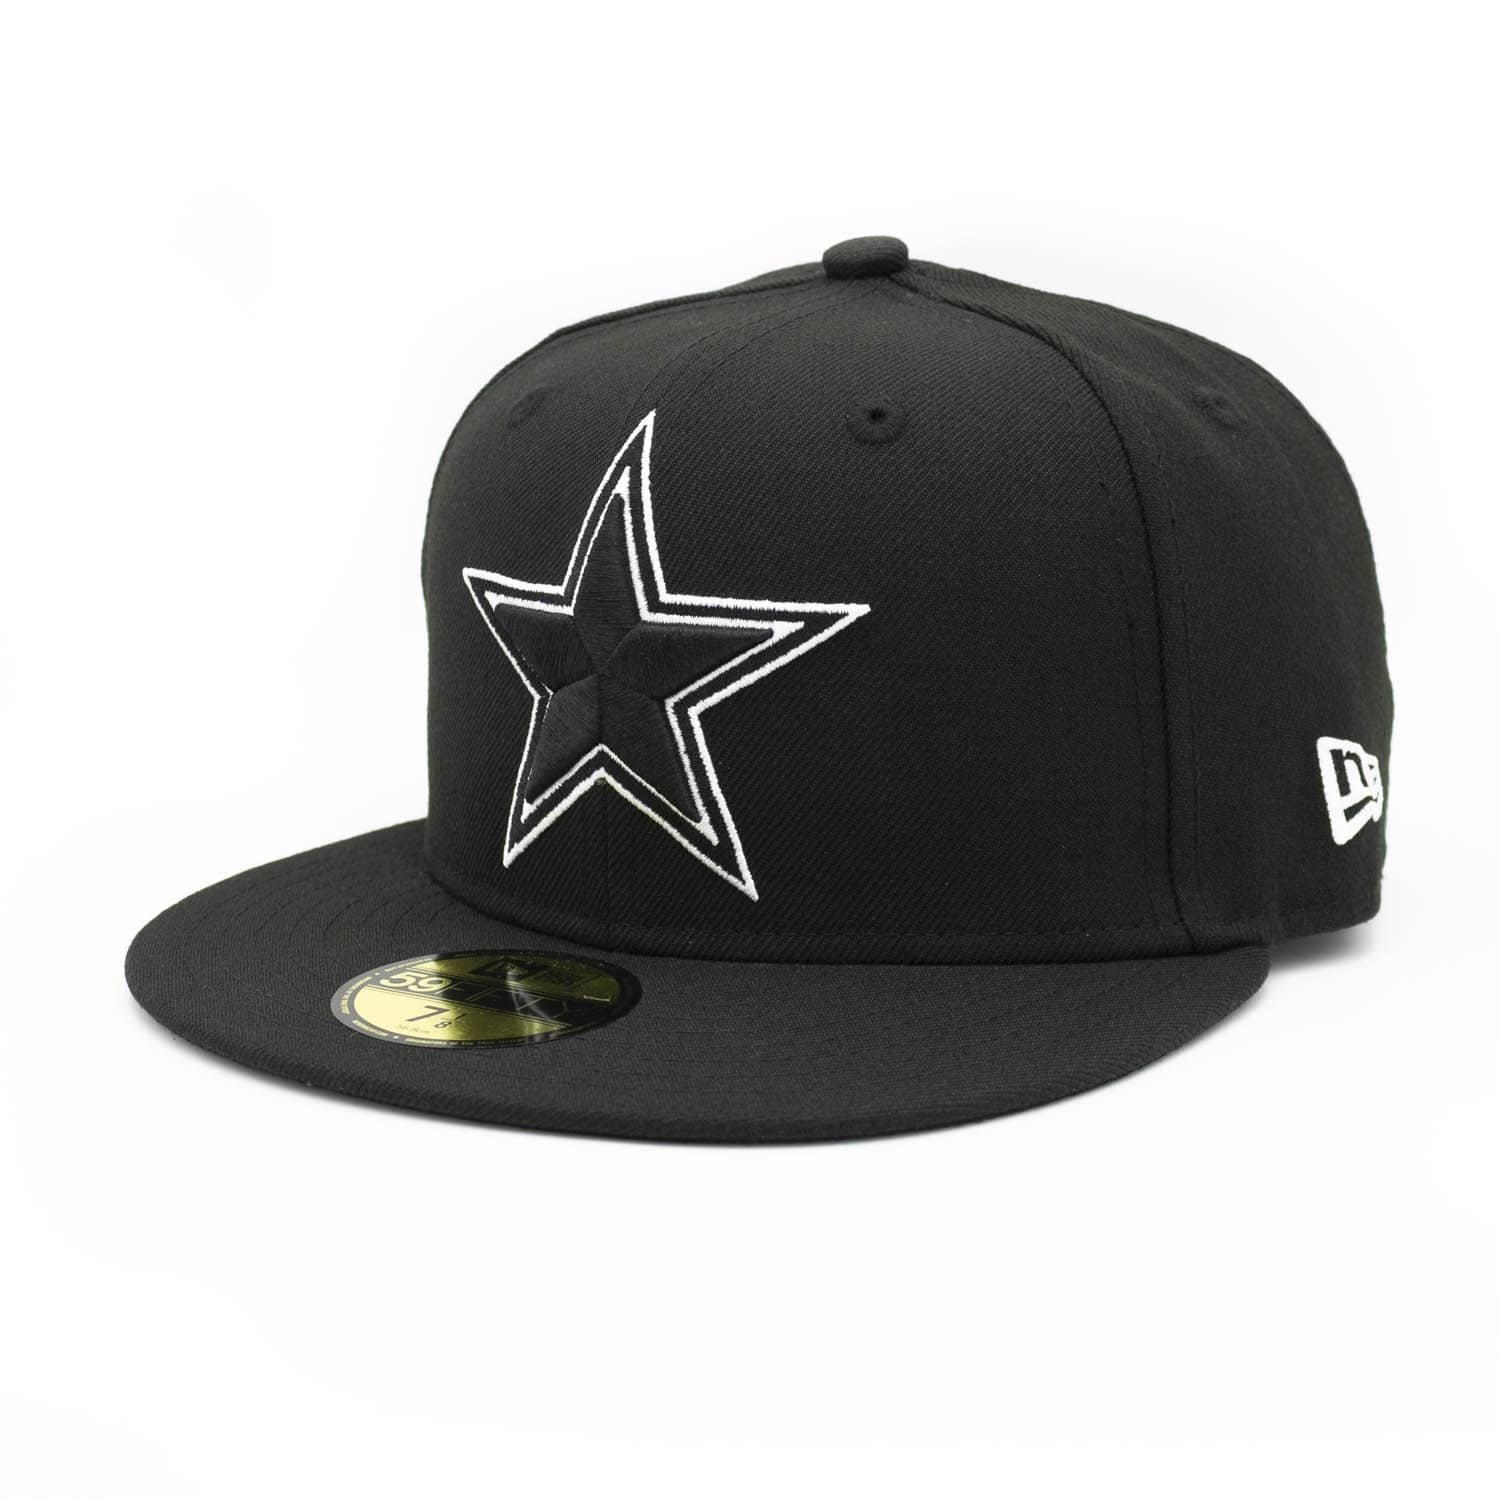 15ac319bd New Era Dallas Cowboys Black   White 59FIFTY Fitted NFL Cap